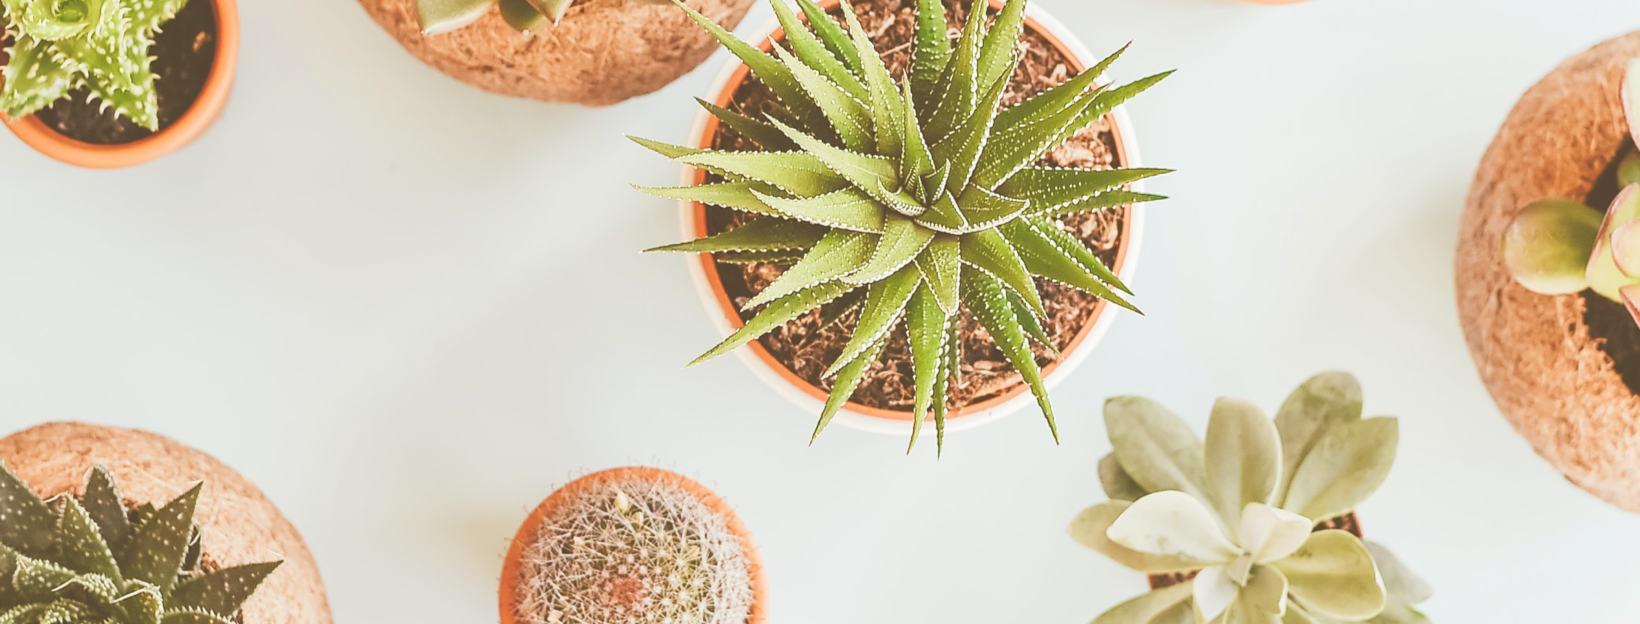 A Basic Guide For Beginner Plant Owners, From Simple Tips To Houseplant Varieties